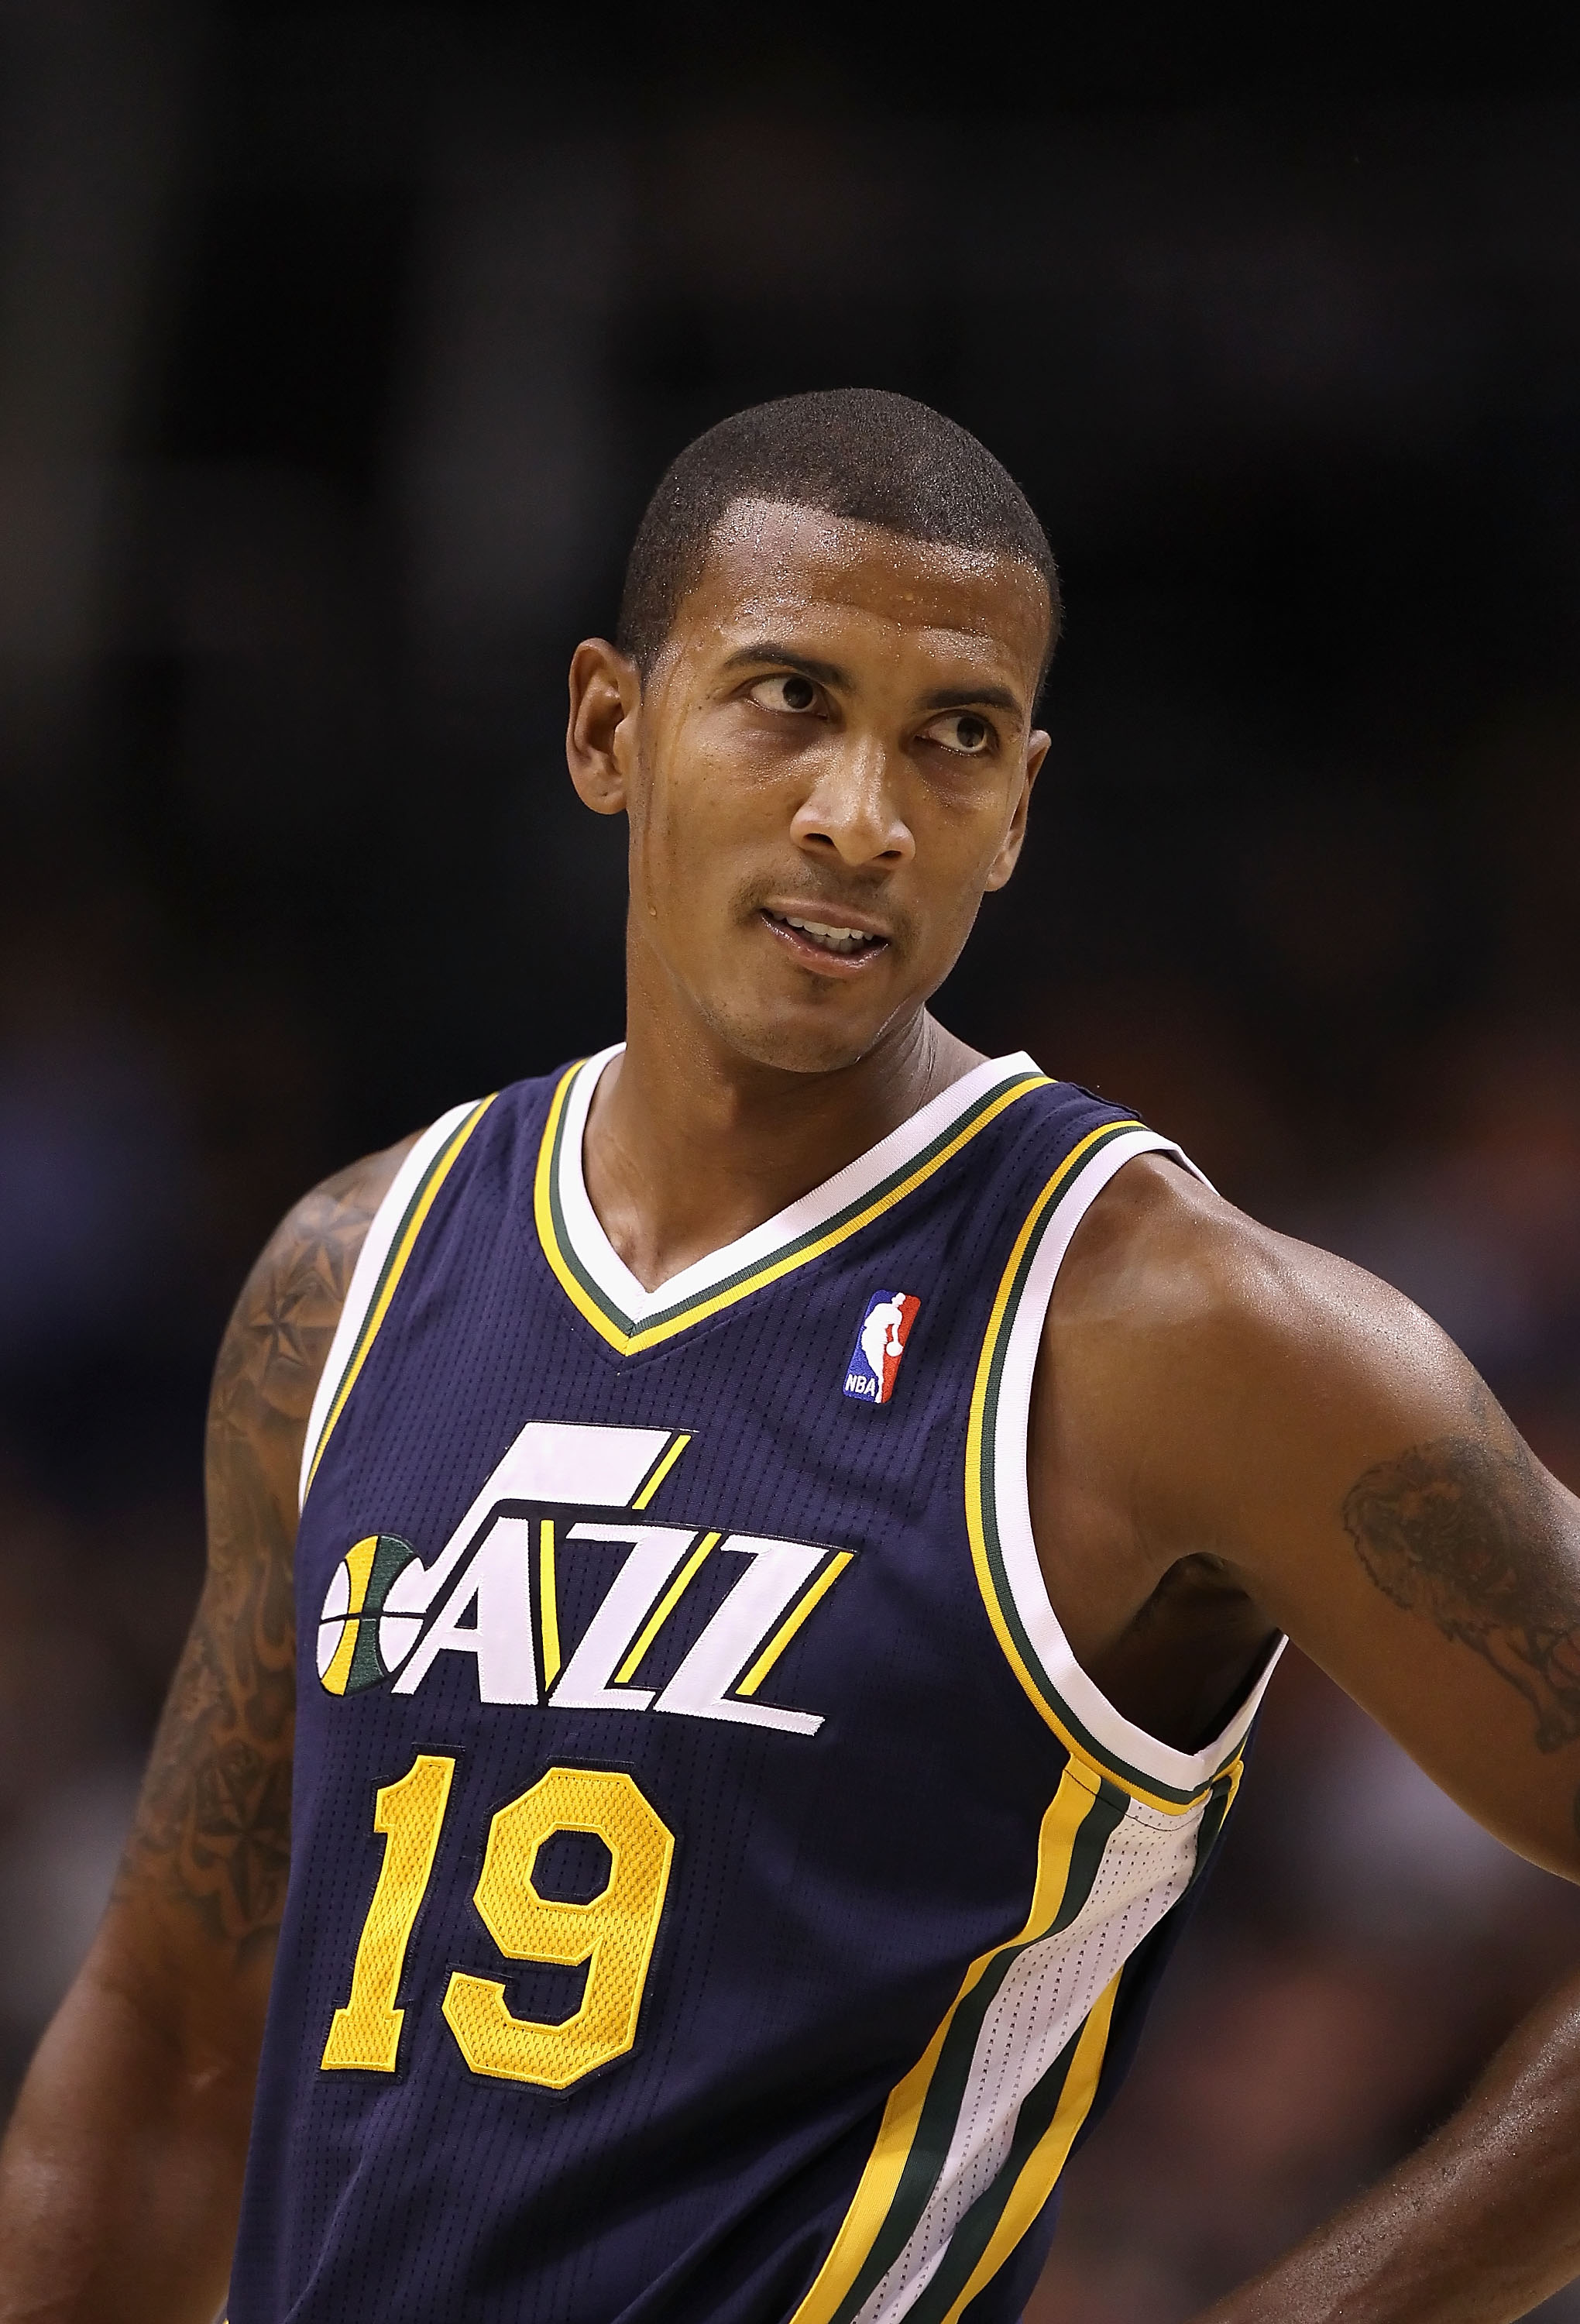 PHOENIX - OCTOBER 12:  Raja Bell #19 of the Utah Jazz in action during the preseason NBA game against the Phoenix Suns at US Airways Center on October 12, 2010 in Phoenix, Arizona. NOTE TO USER: User expressly acknowledges and agrees that, by downloading